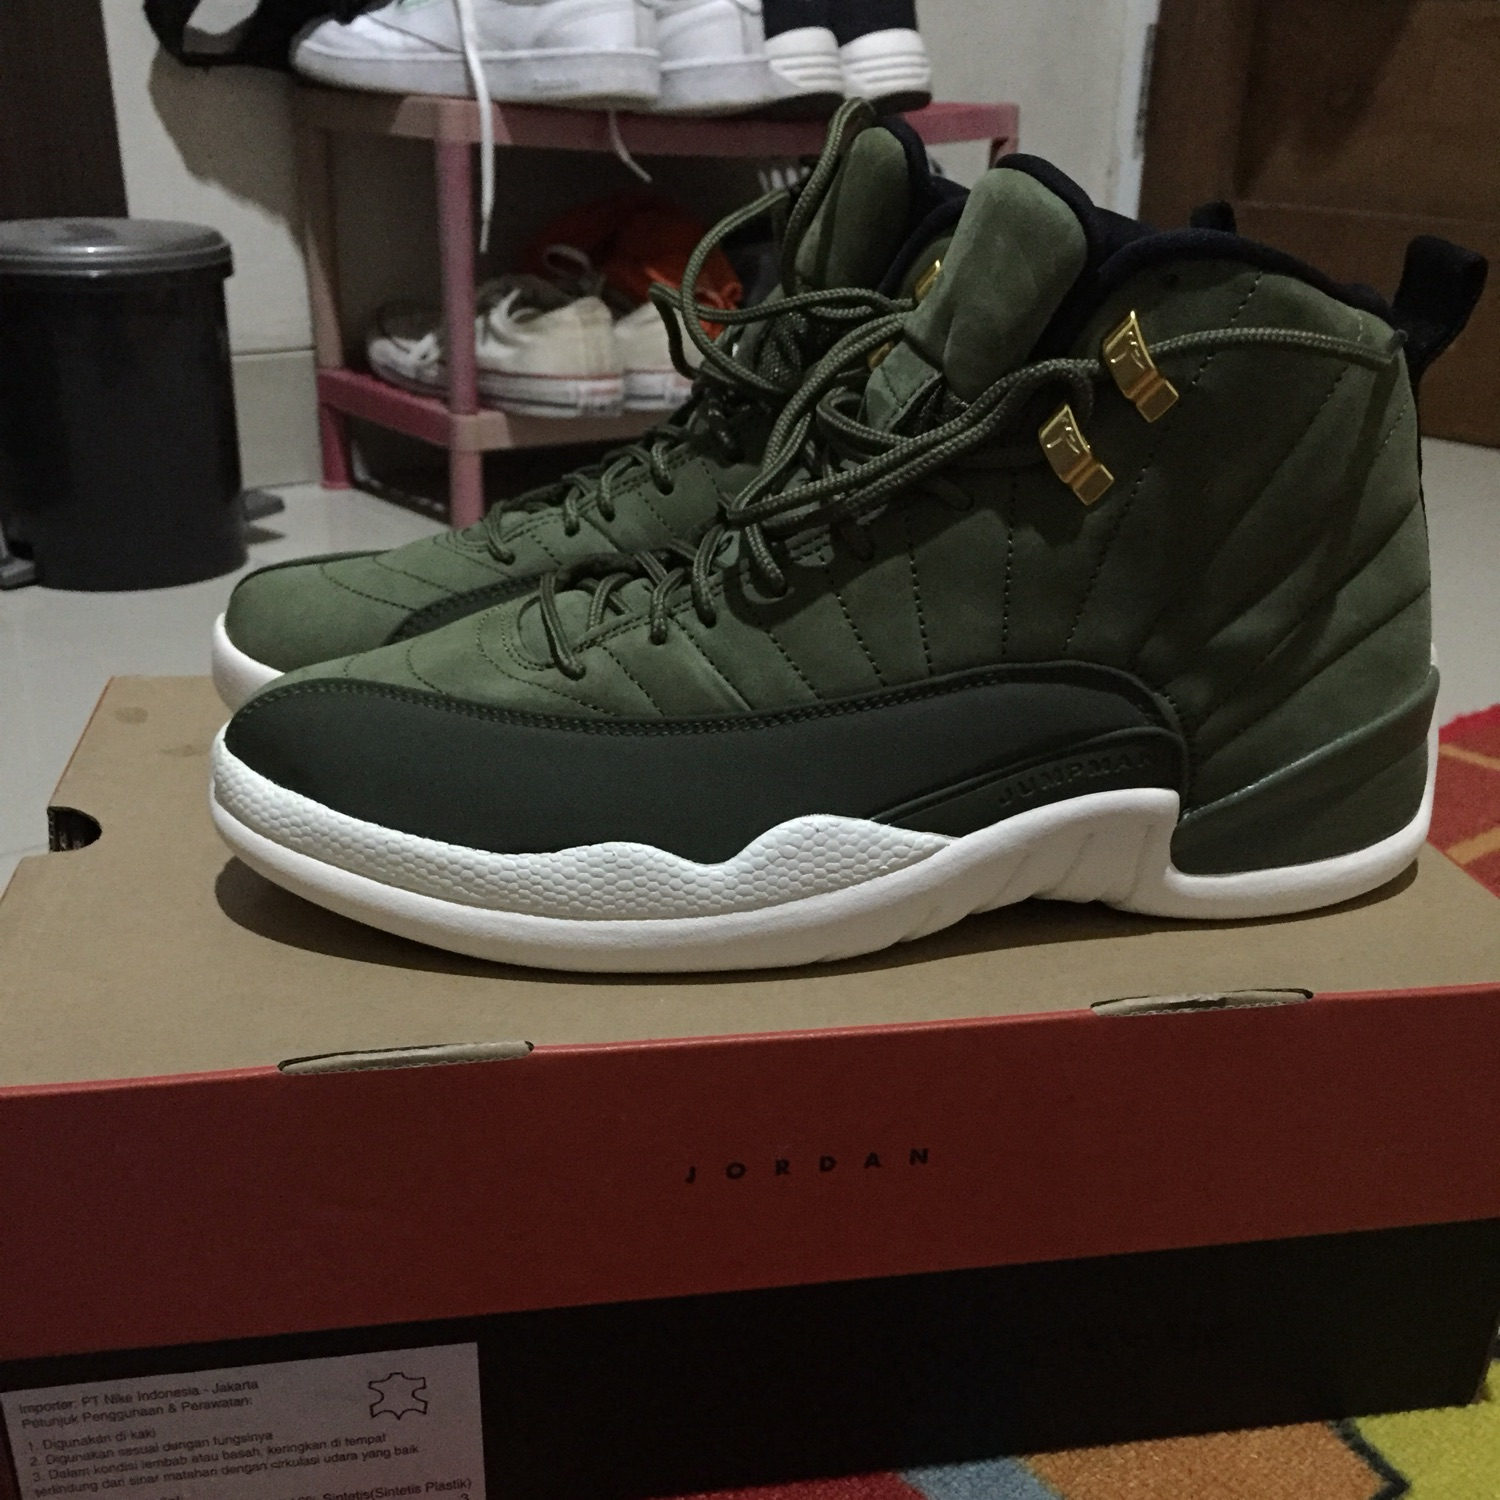 best service 09239 543d9 Air Jordan 12 Retro Olive Green